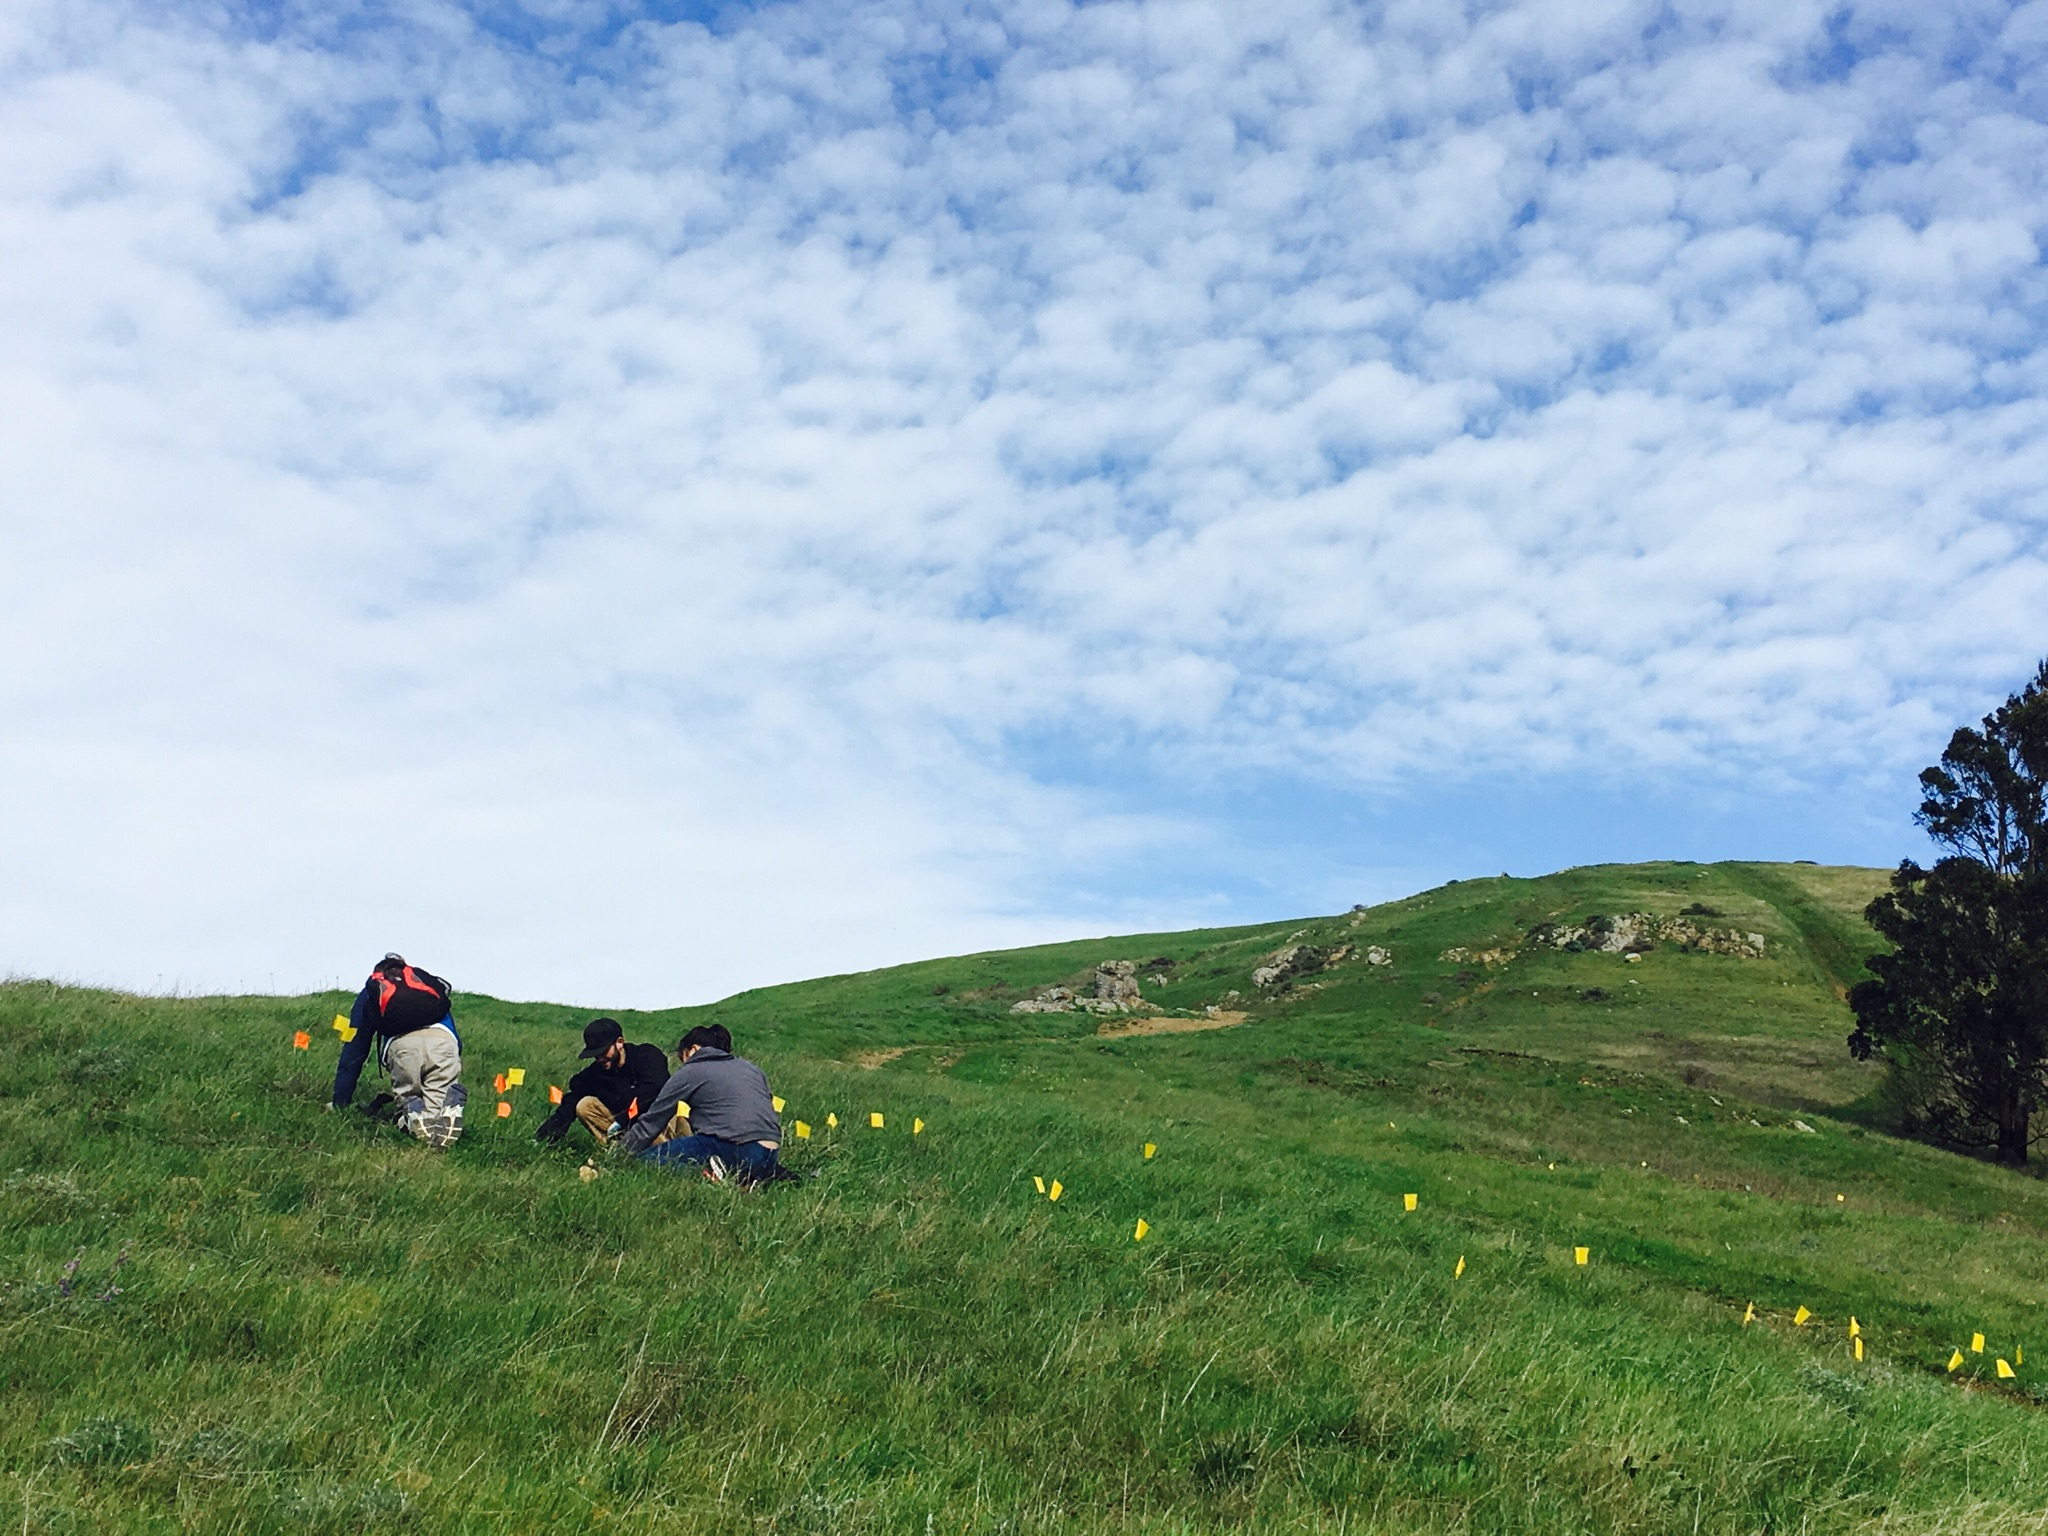 Volunteers planting nectar plants to nourish the Mission Blue and Callippe Silverspot butterflies.